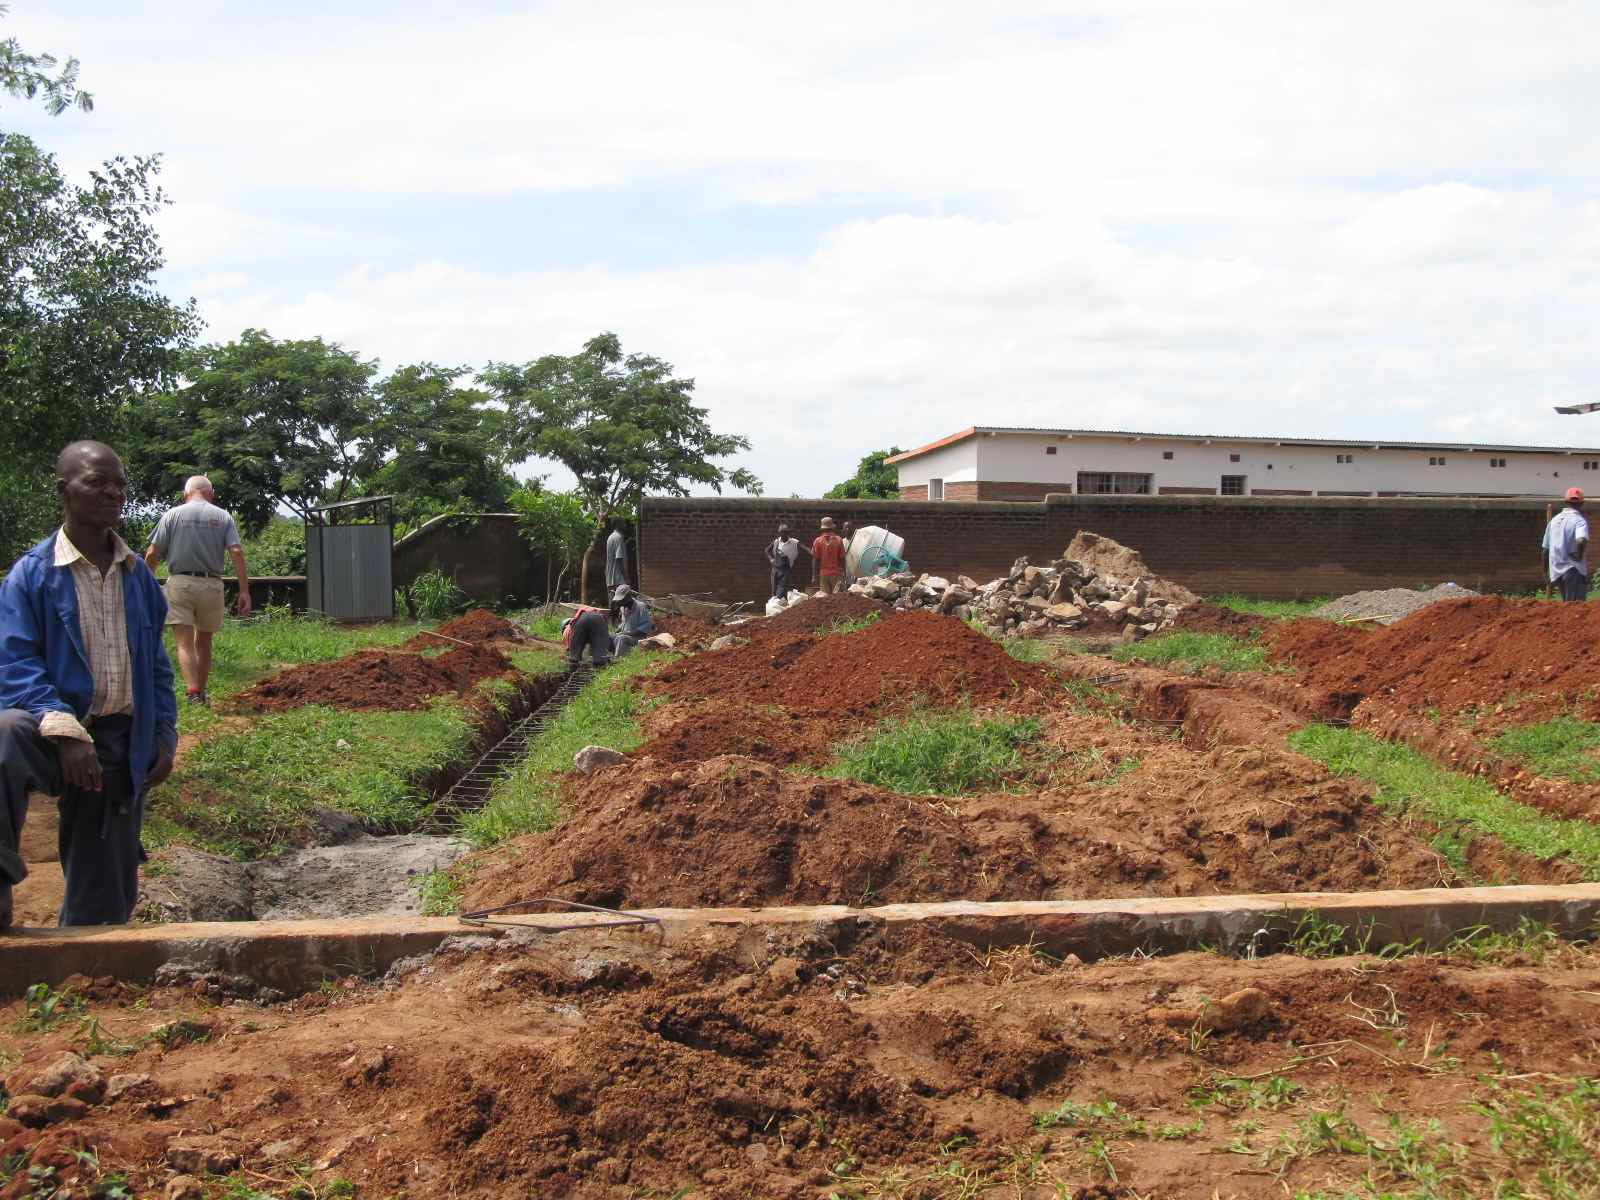 The site where the hostel is being built